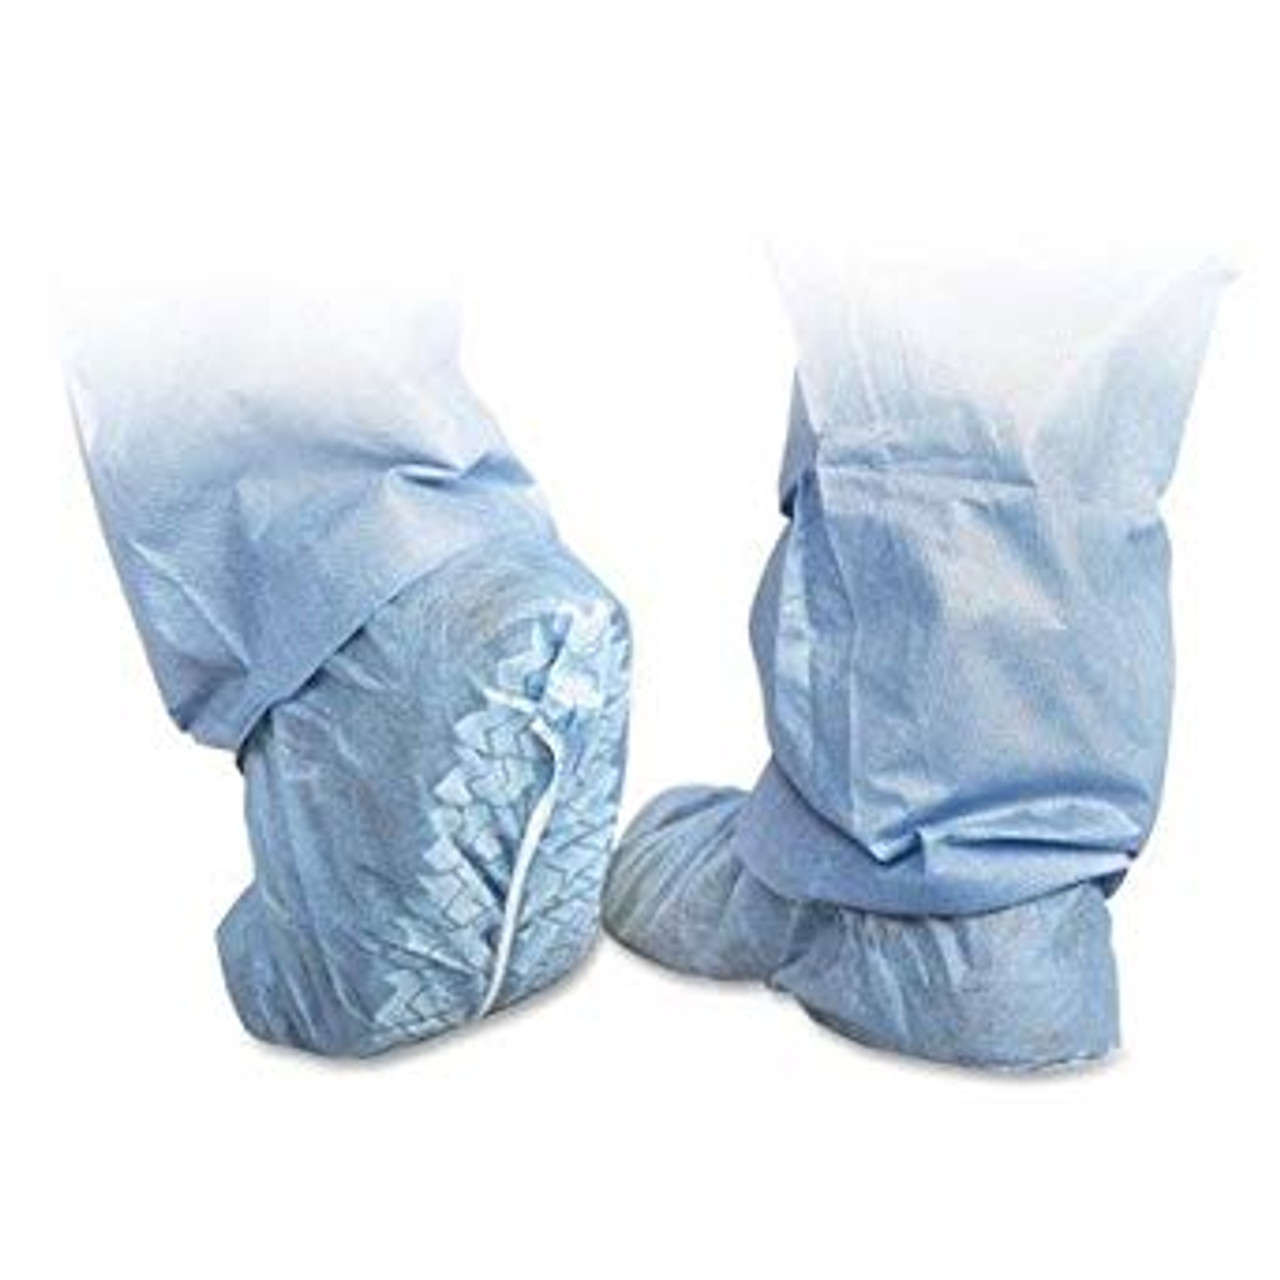 Polypropylene Non-Skid Shoe Covers Blue 100/Box